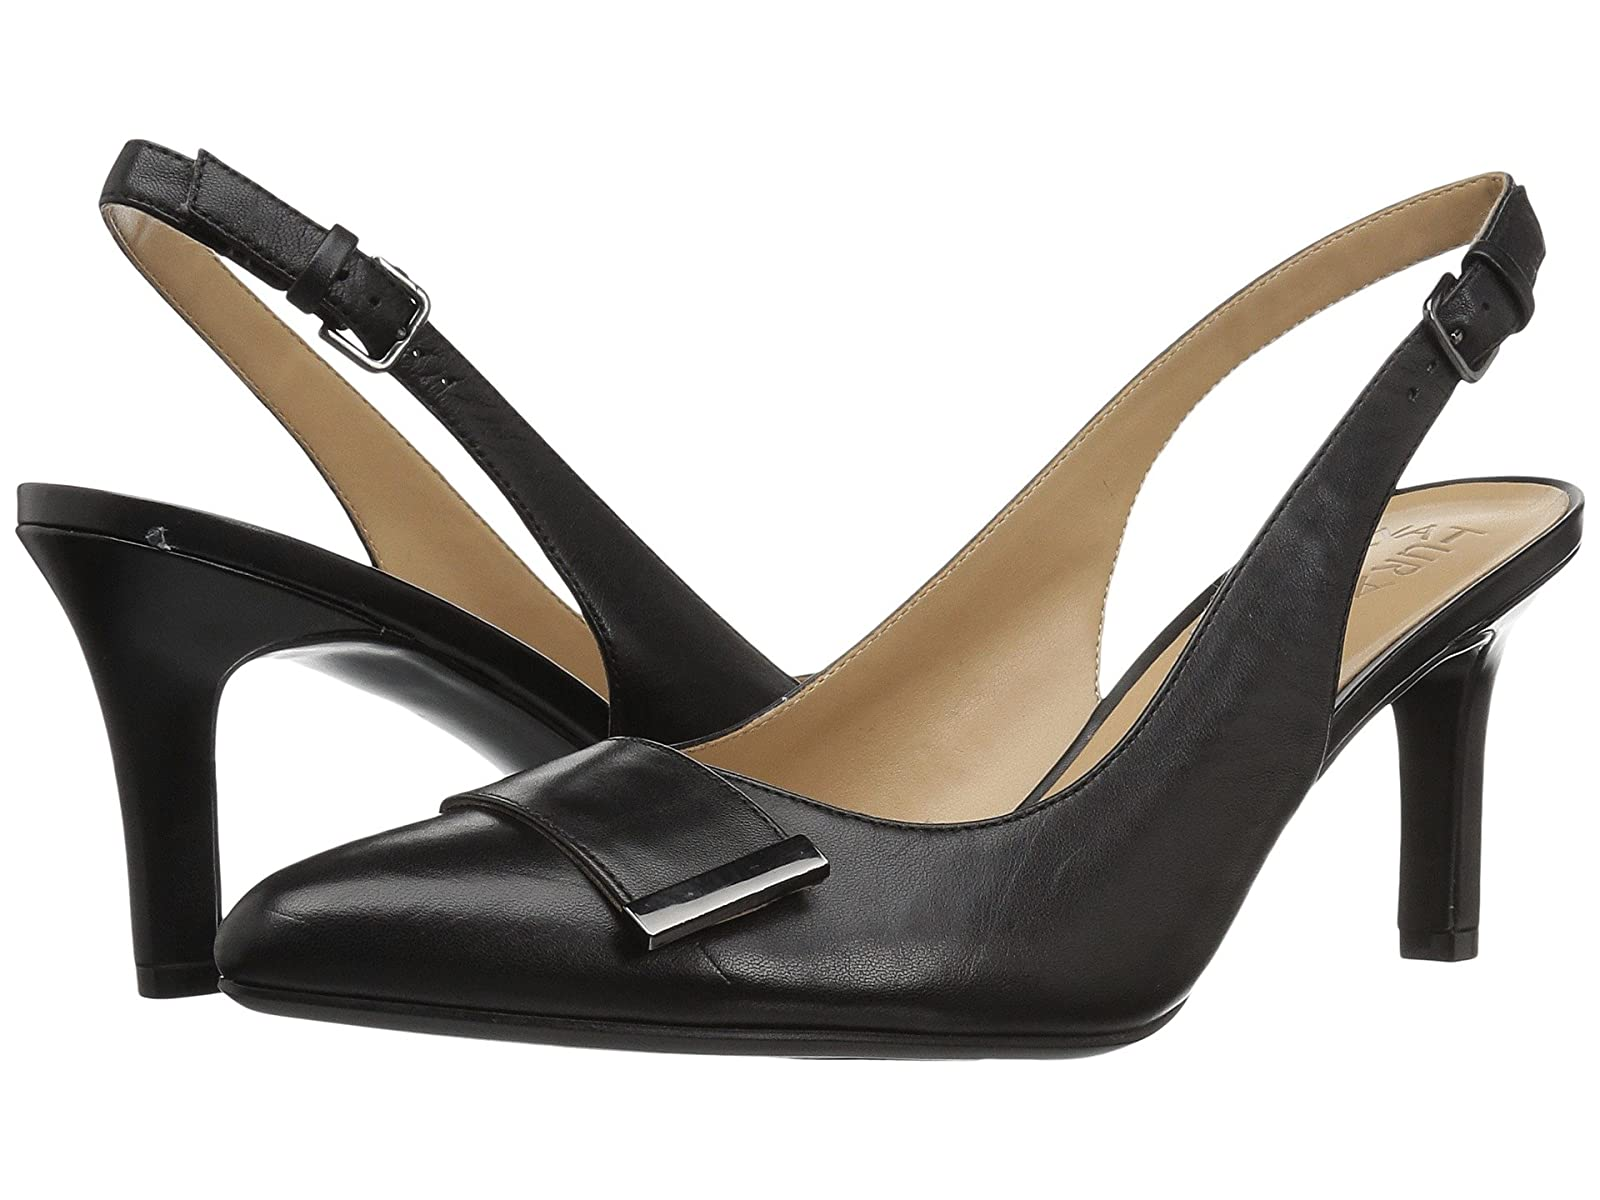 Naturalizer NicoletteCheap and distinctive eye-catching shoes